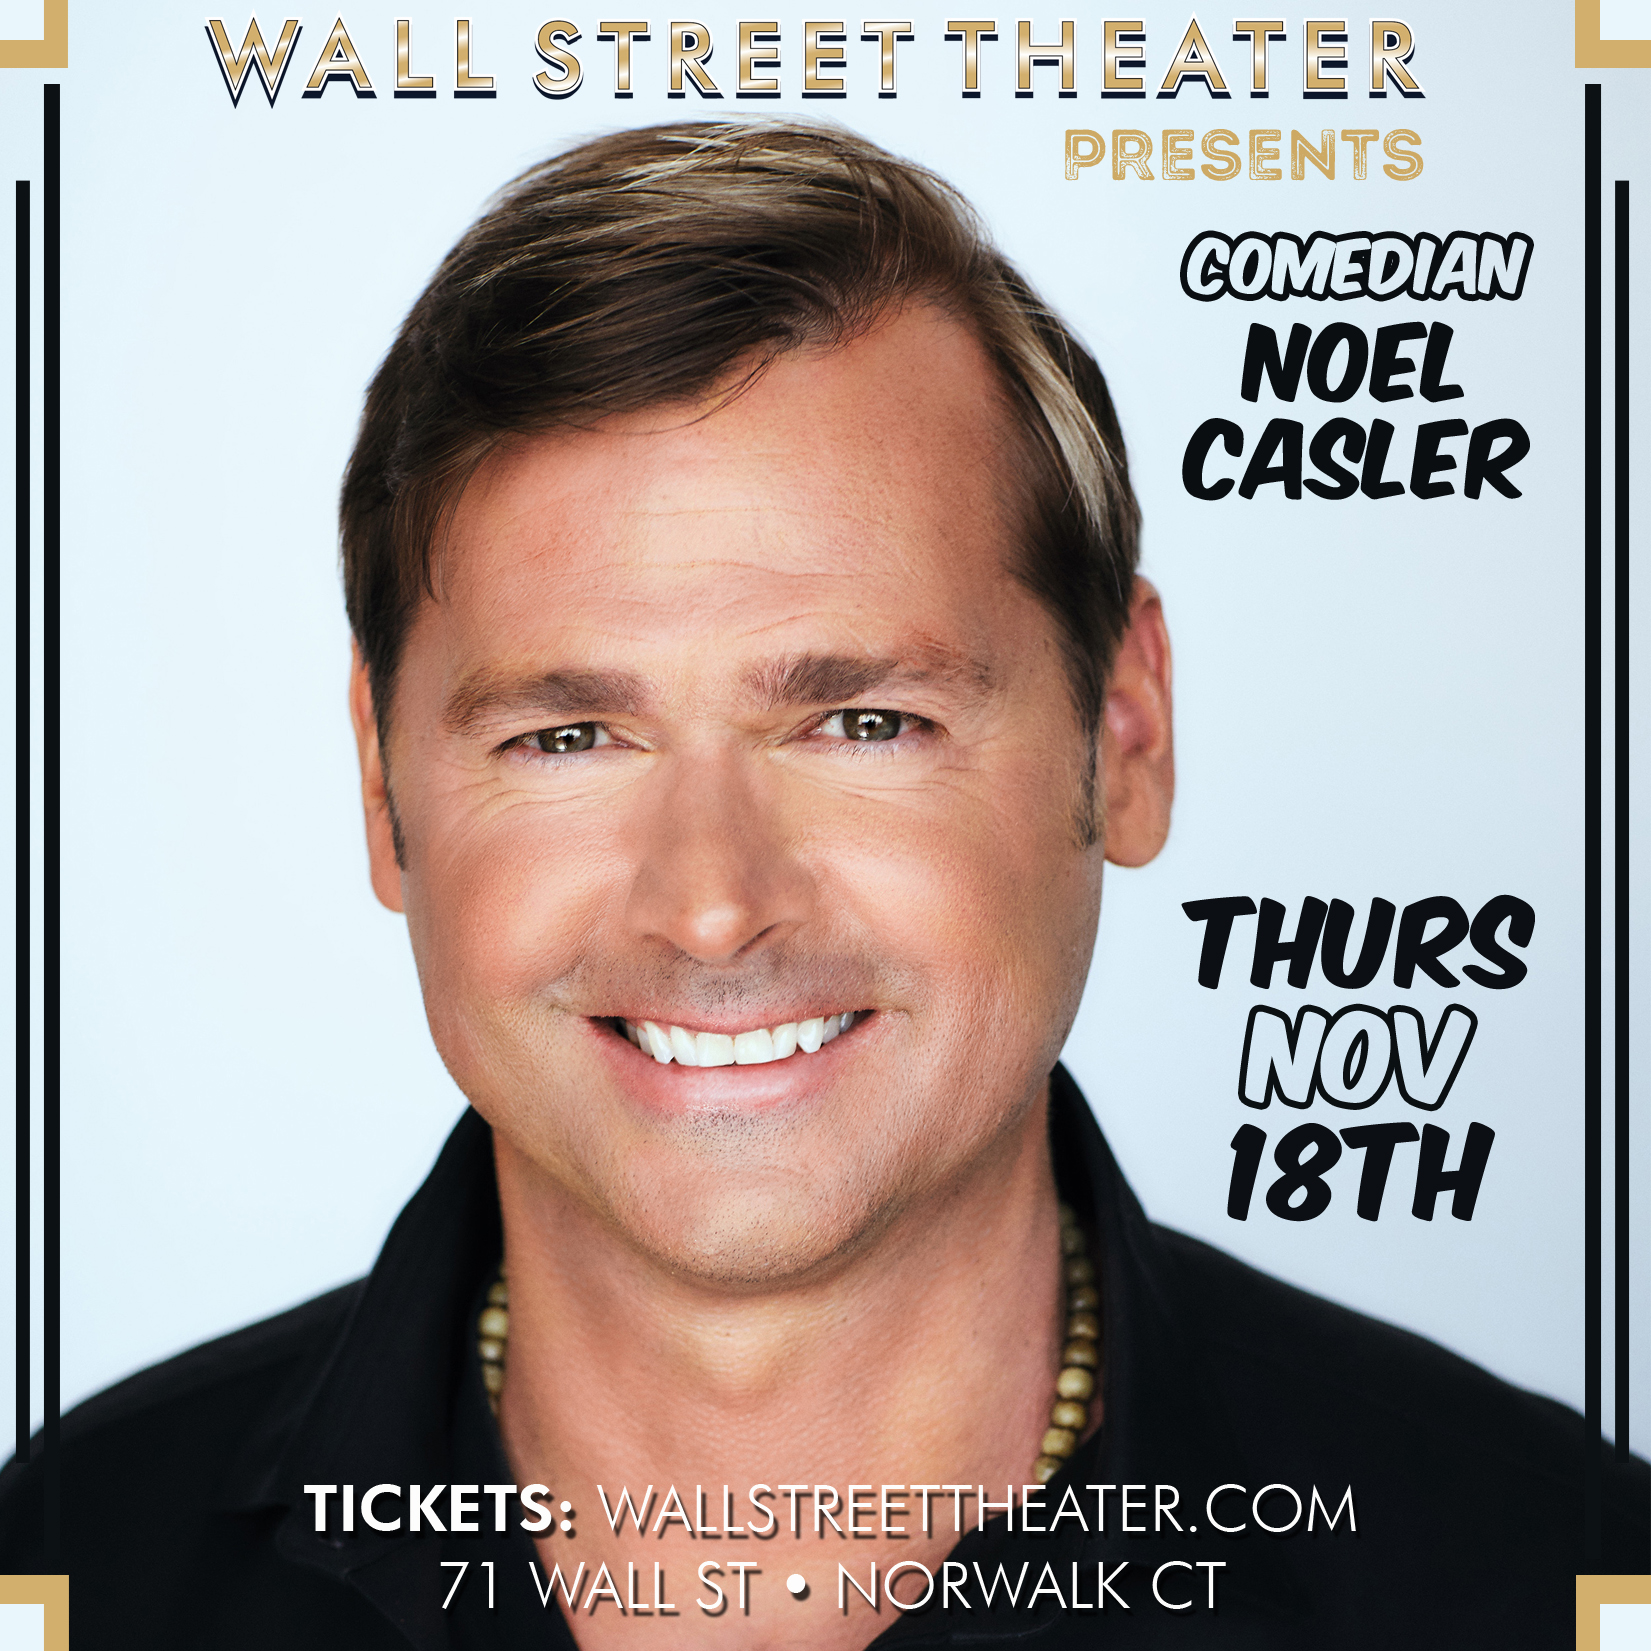 Noel Casler at Wall Street Theater